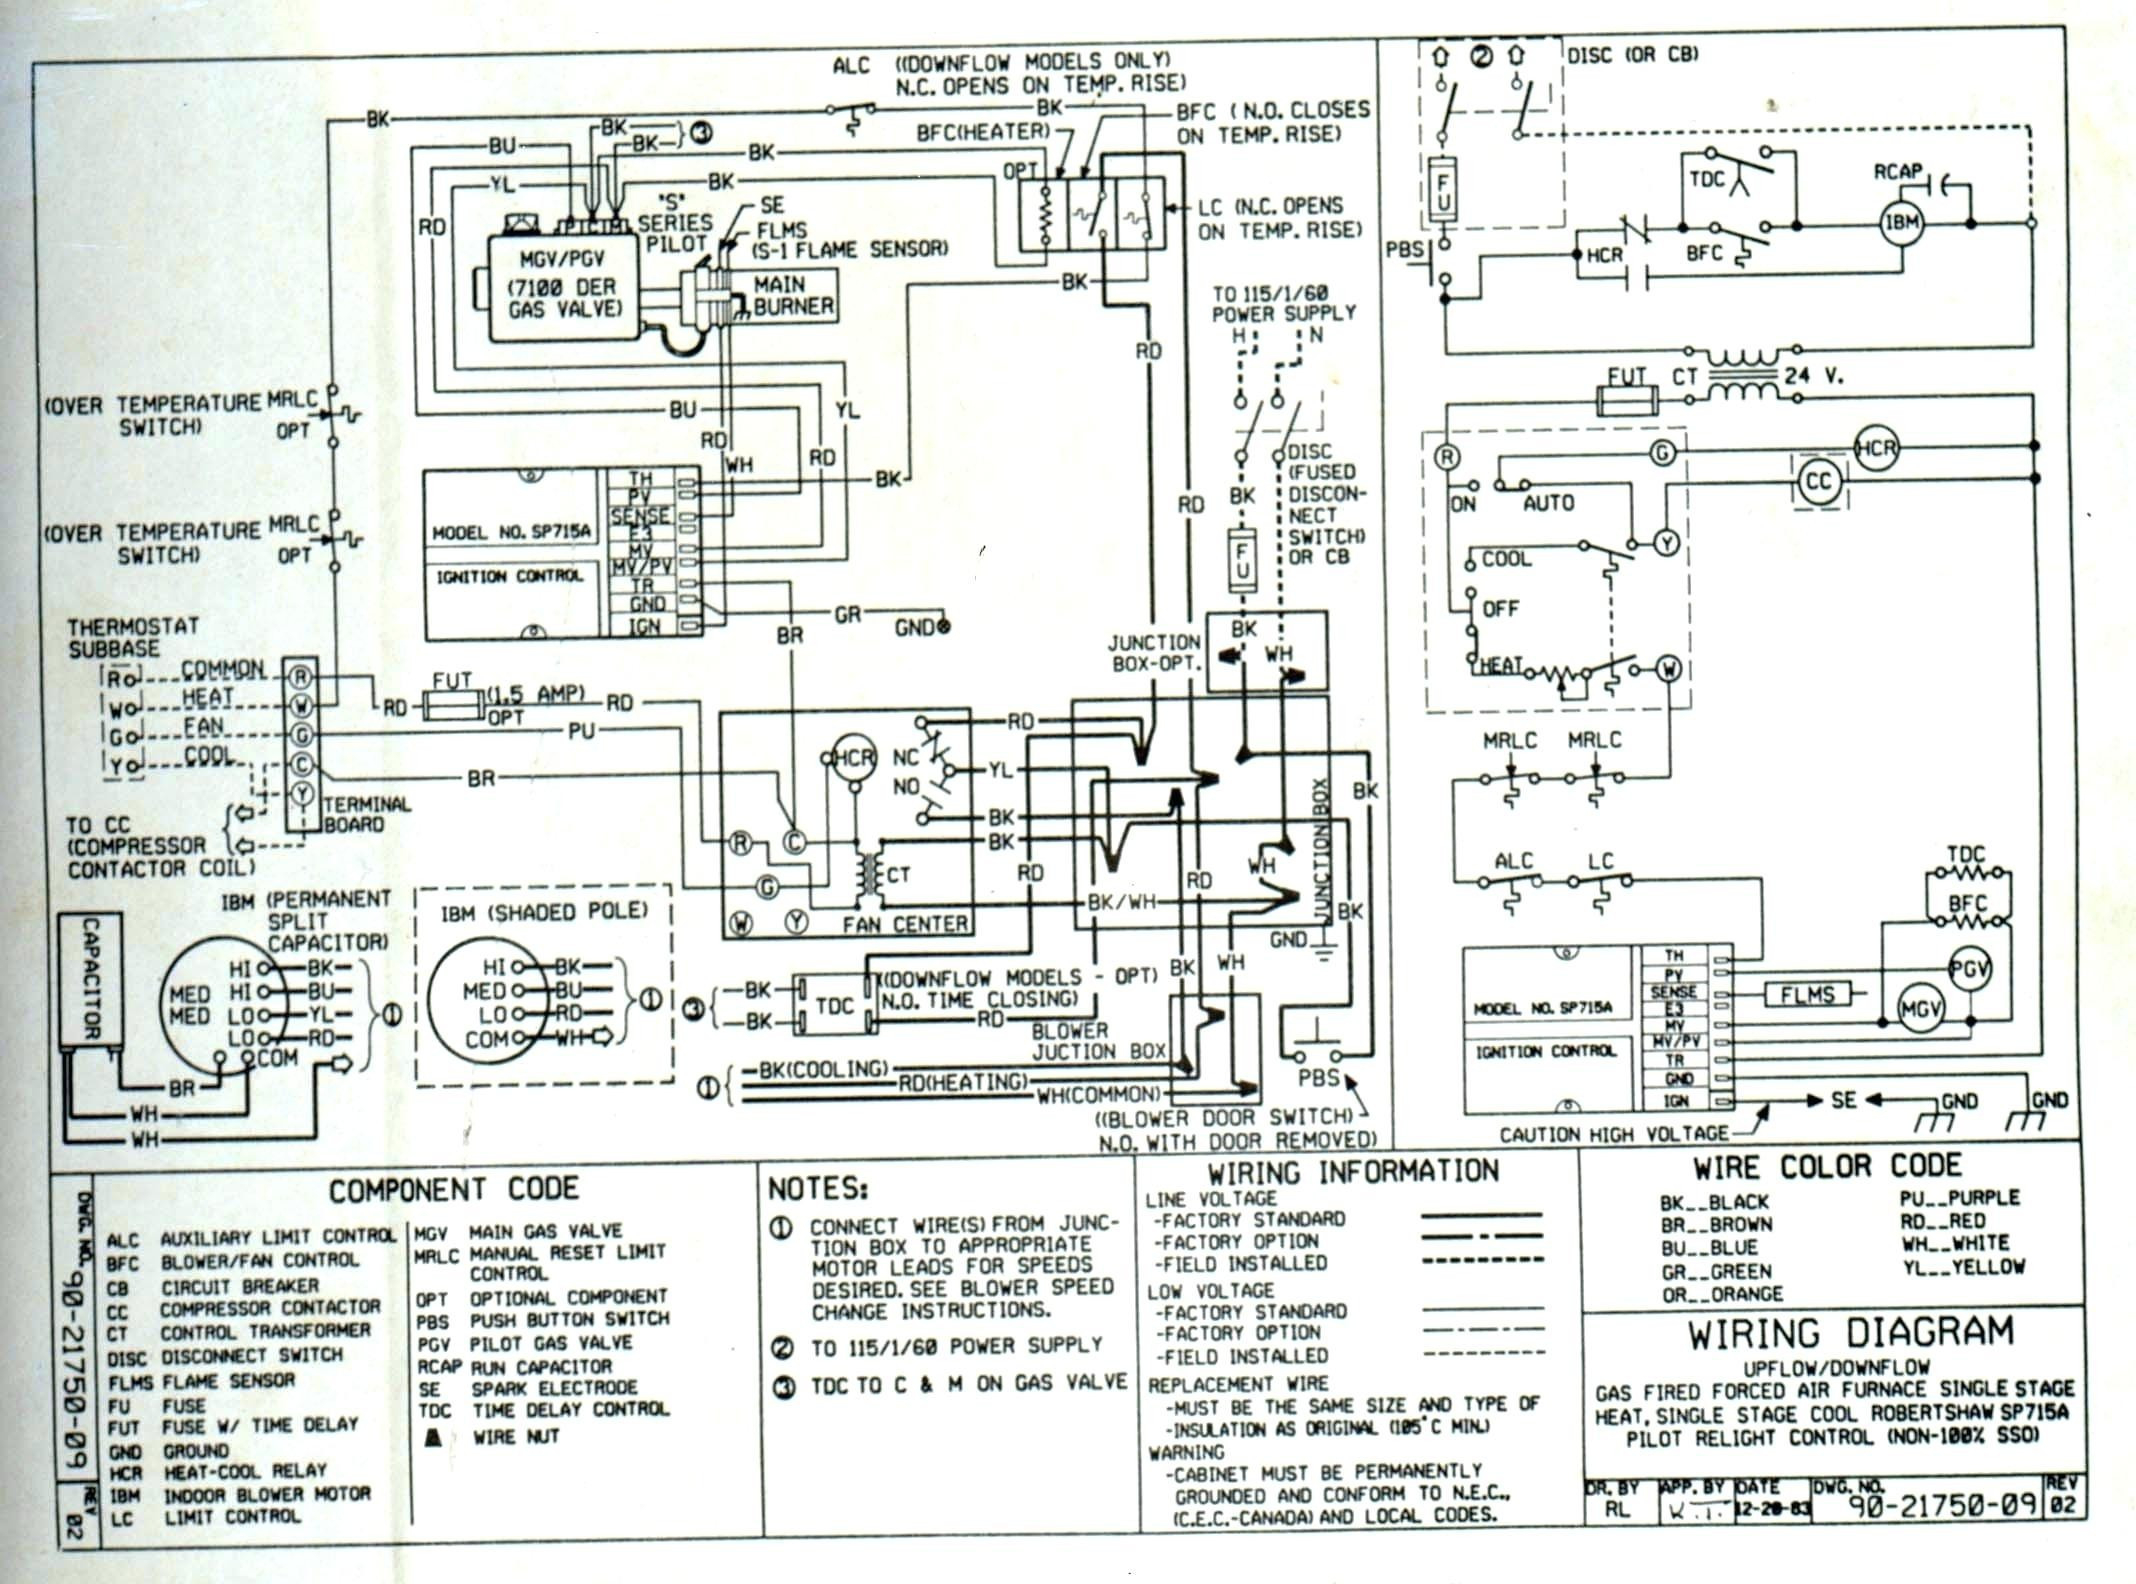 hvac wiring diagram pdf Collection-Residential Wiring Diagram Symbols Reference Hvac Wiring Diagram Symbols Pdf Inspirationa Hvac Electrical Wiring 18-f